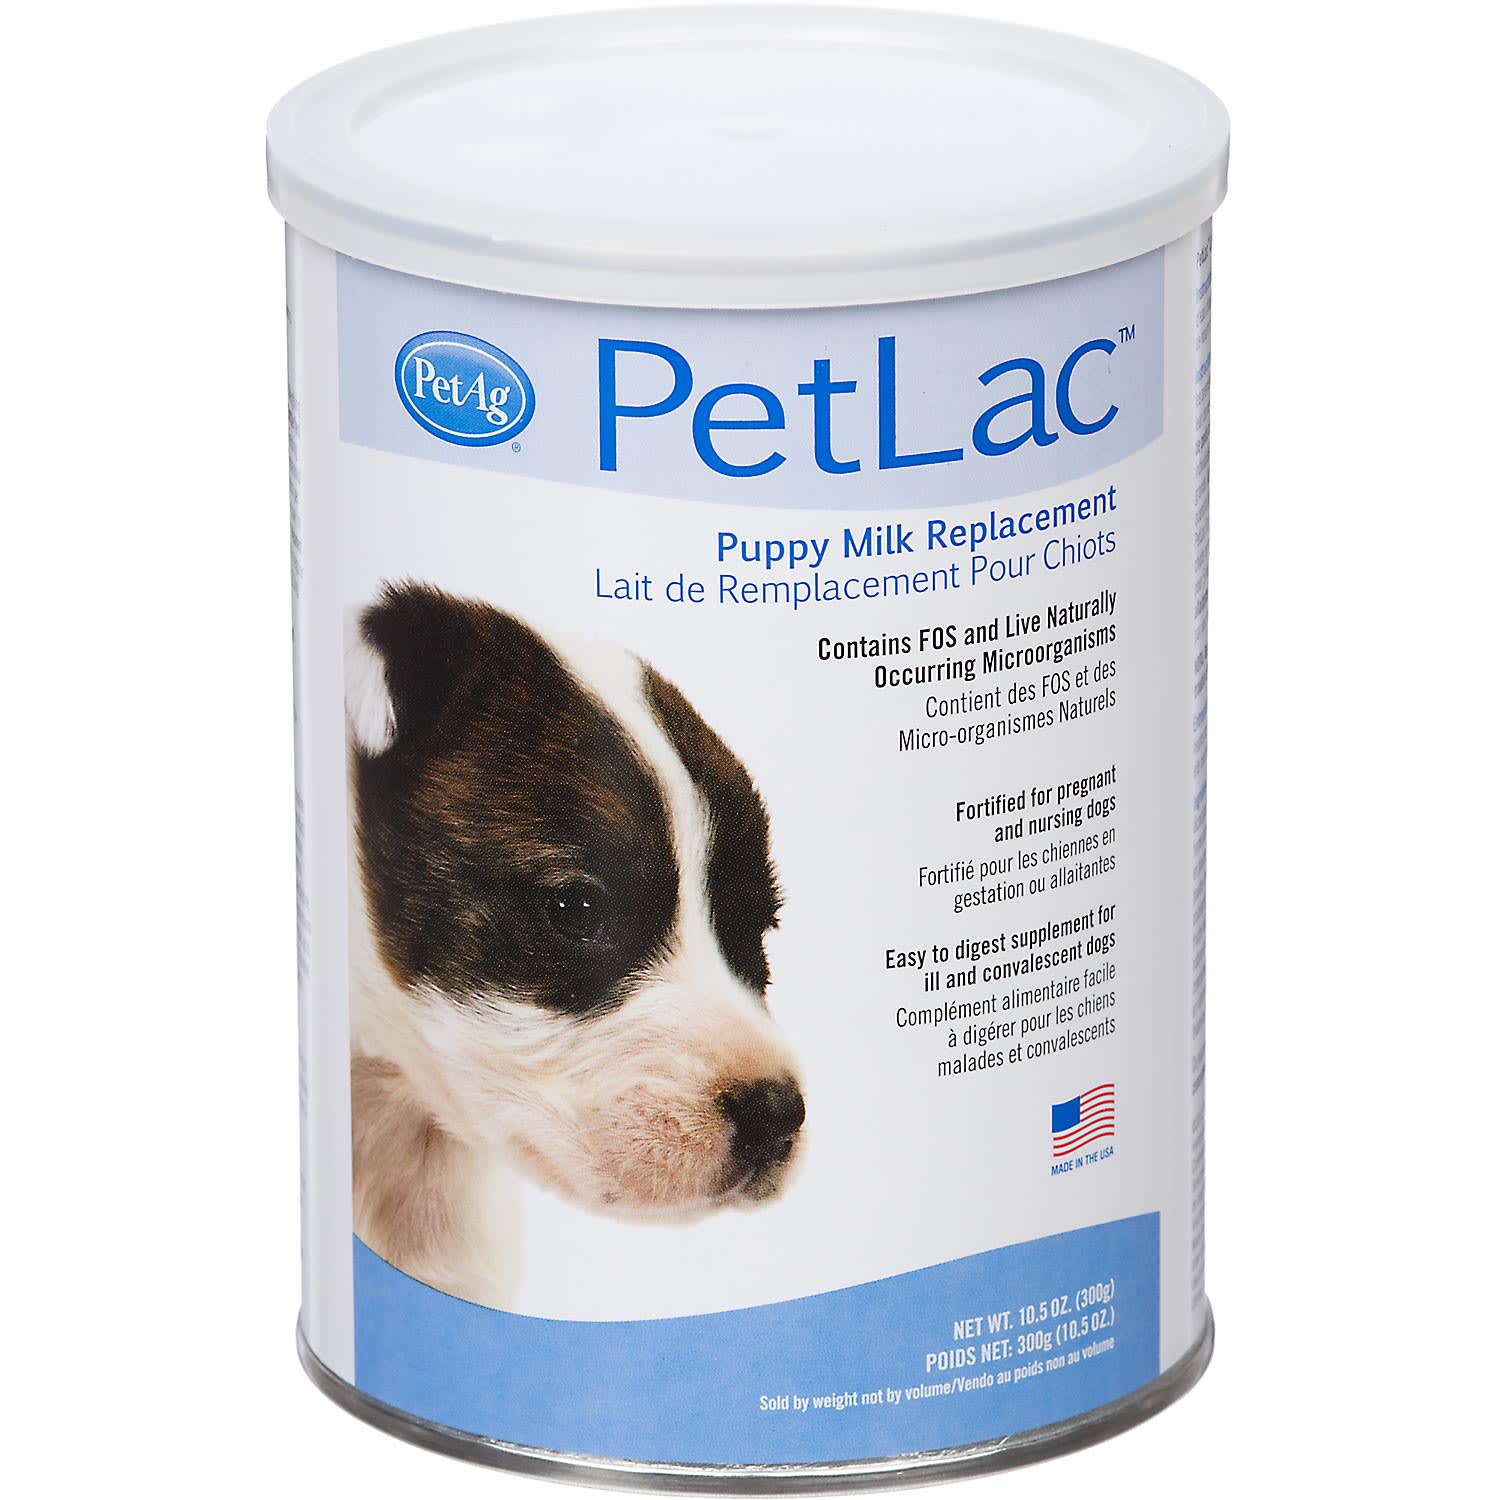 PetAg PetLac Puppy Milk Replacement, 10.5 OZ